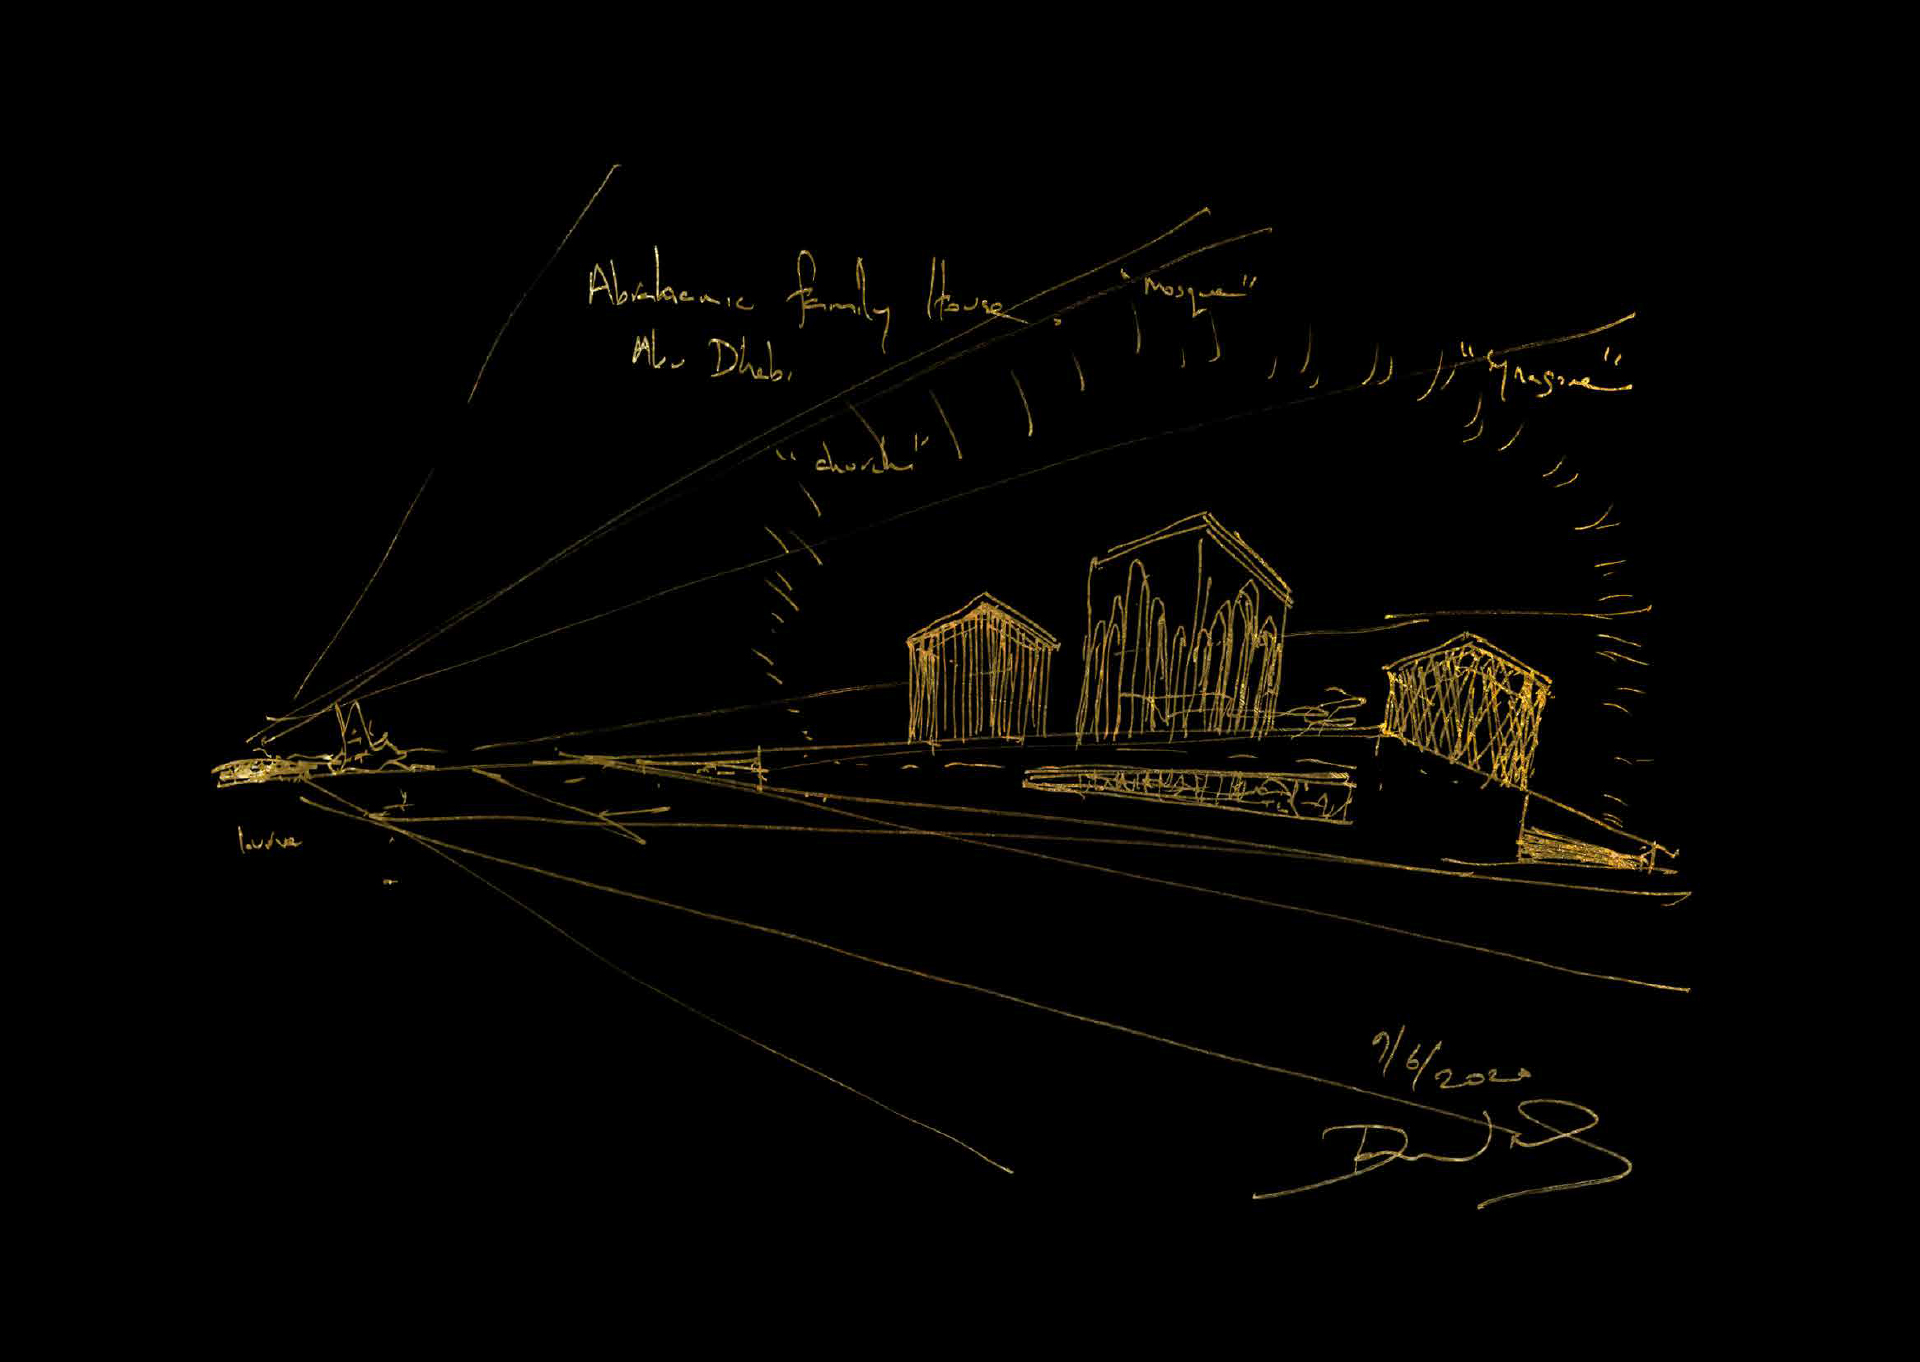 A gold-on-black lithograph of a house